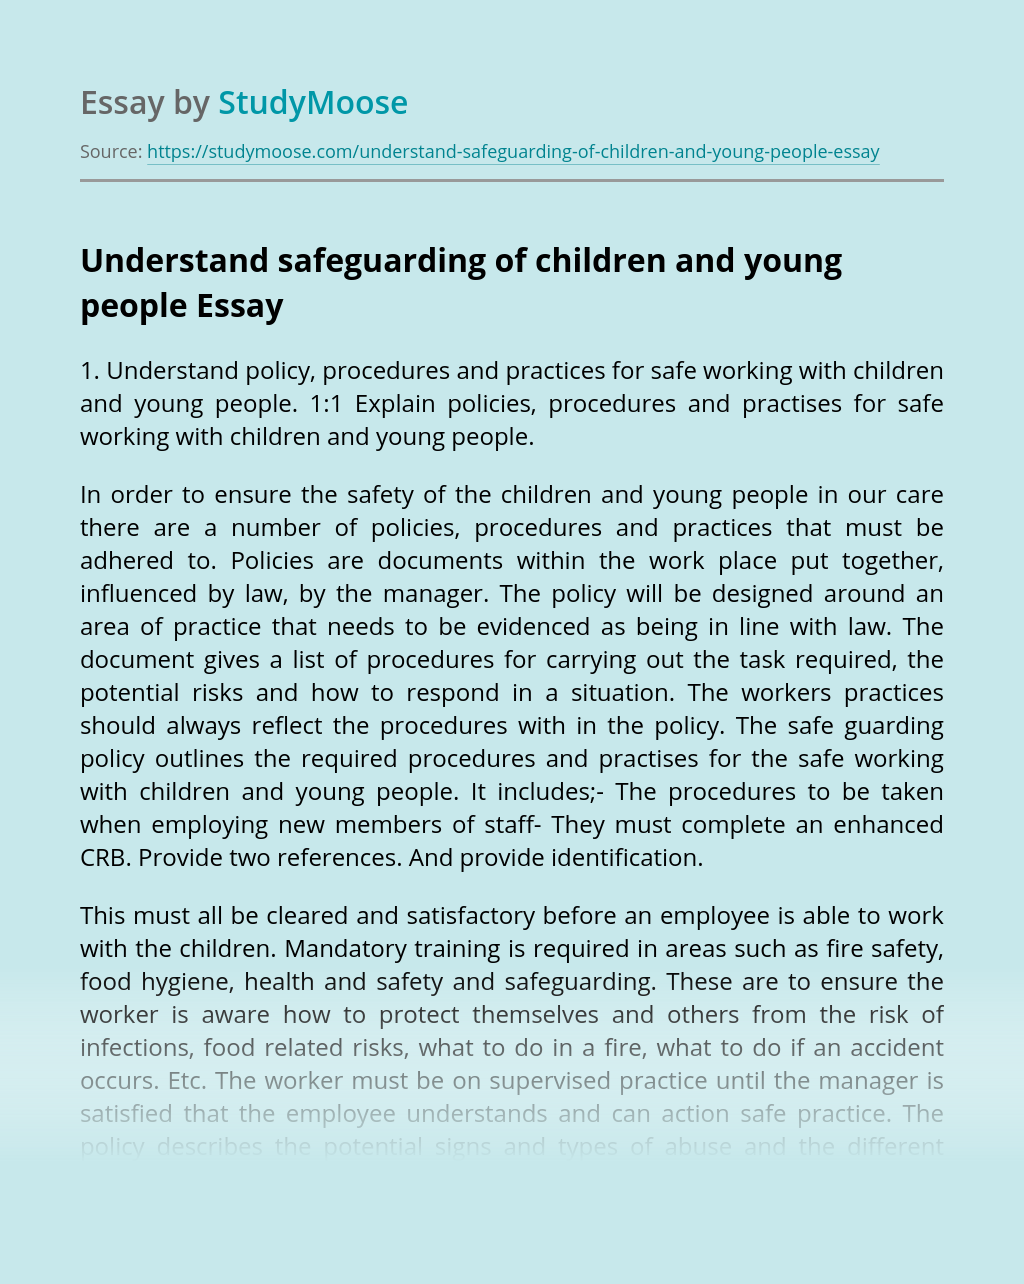 Understand safeguarding of children and young people